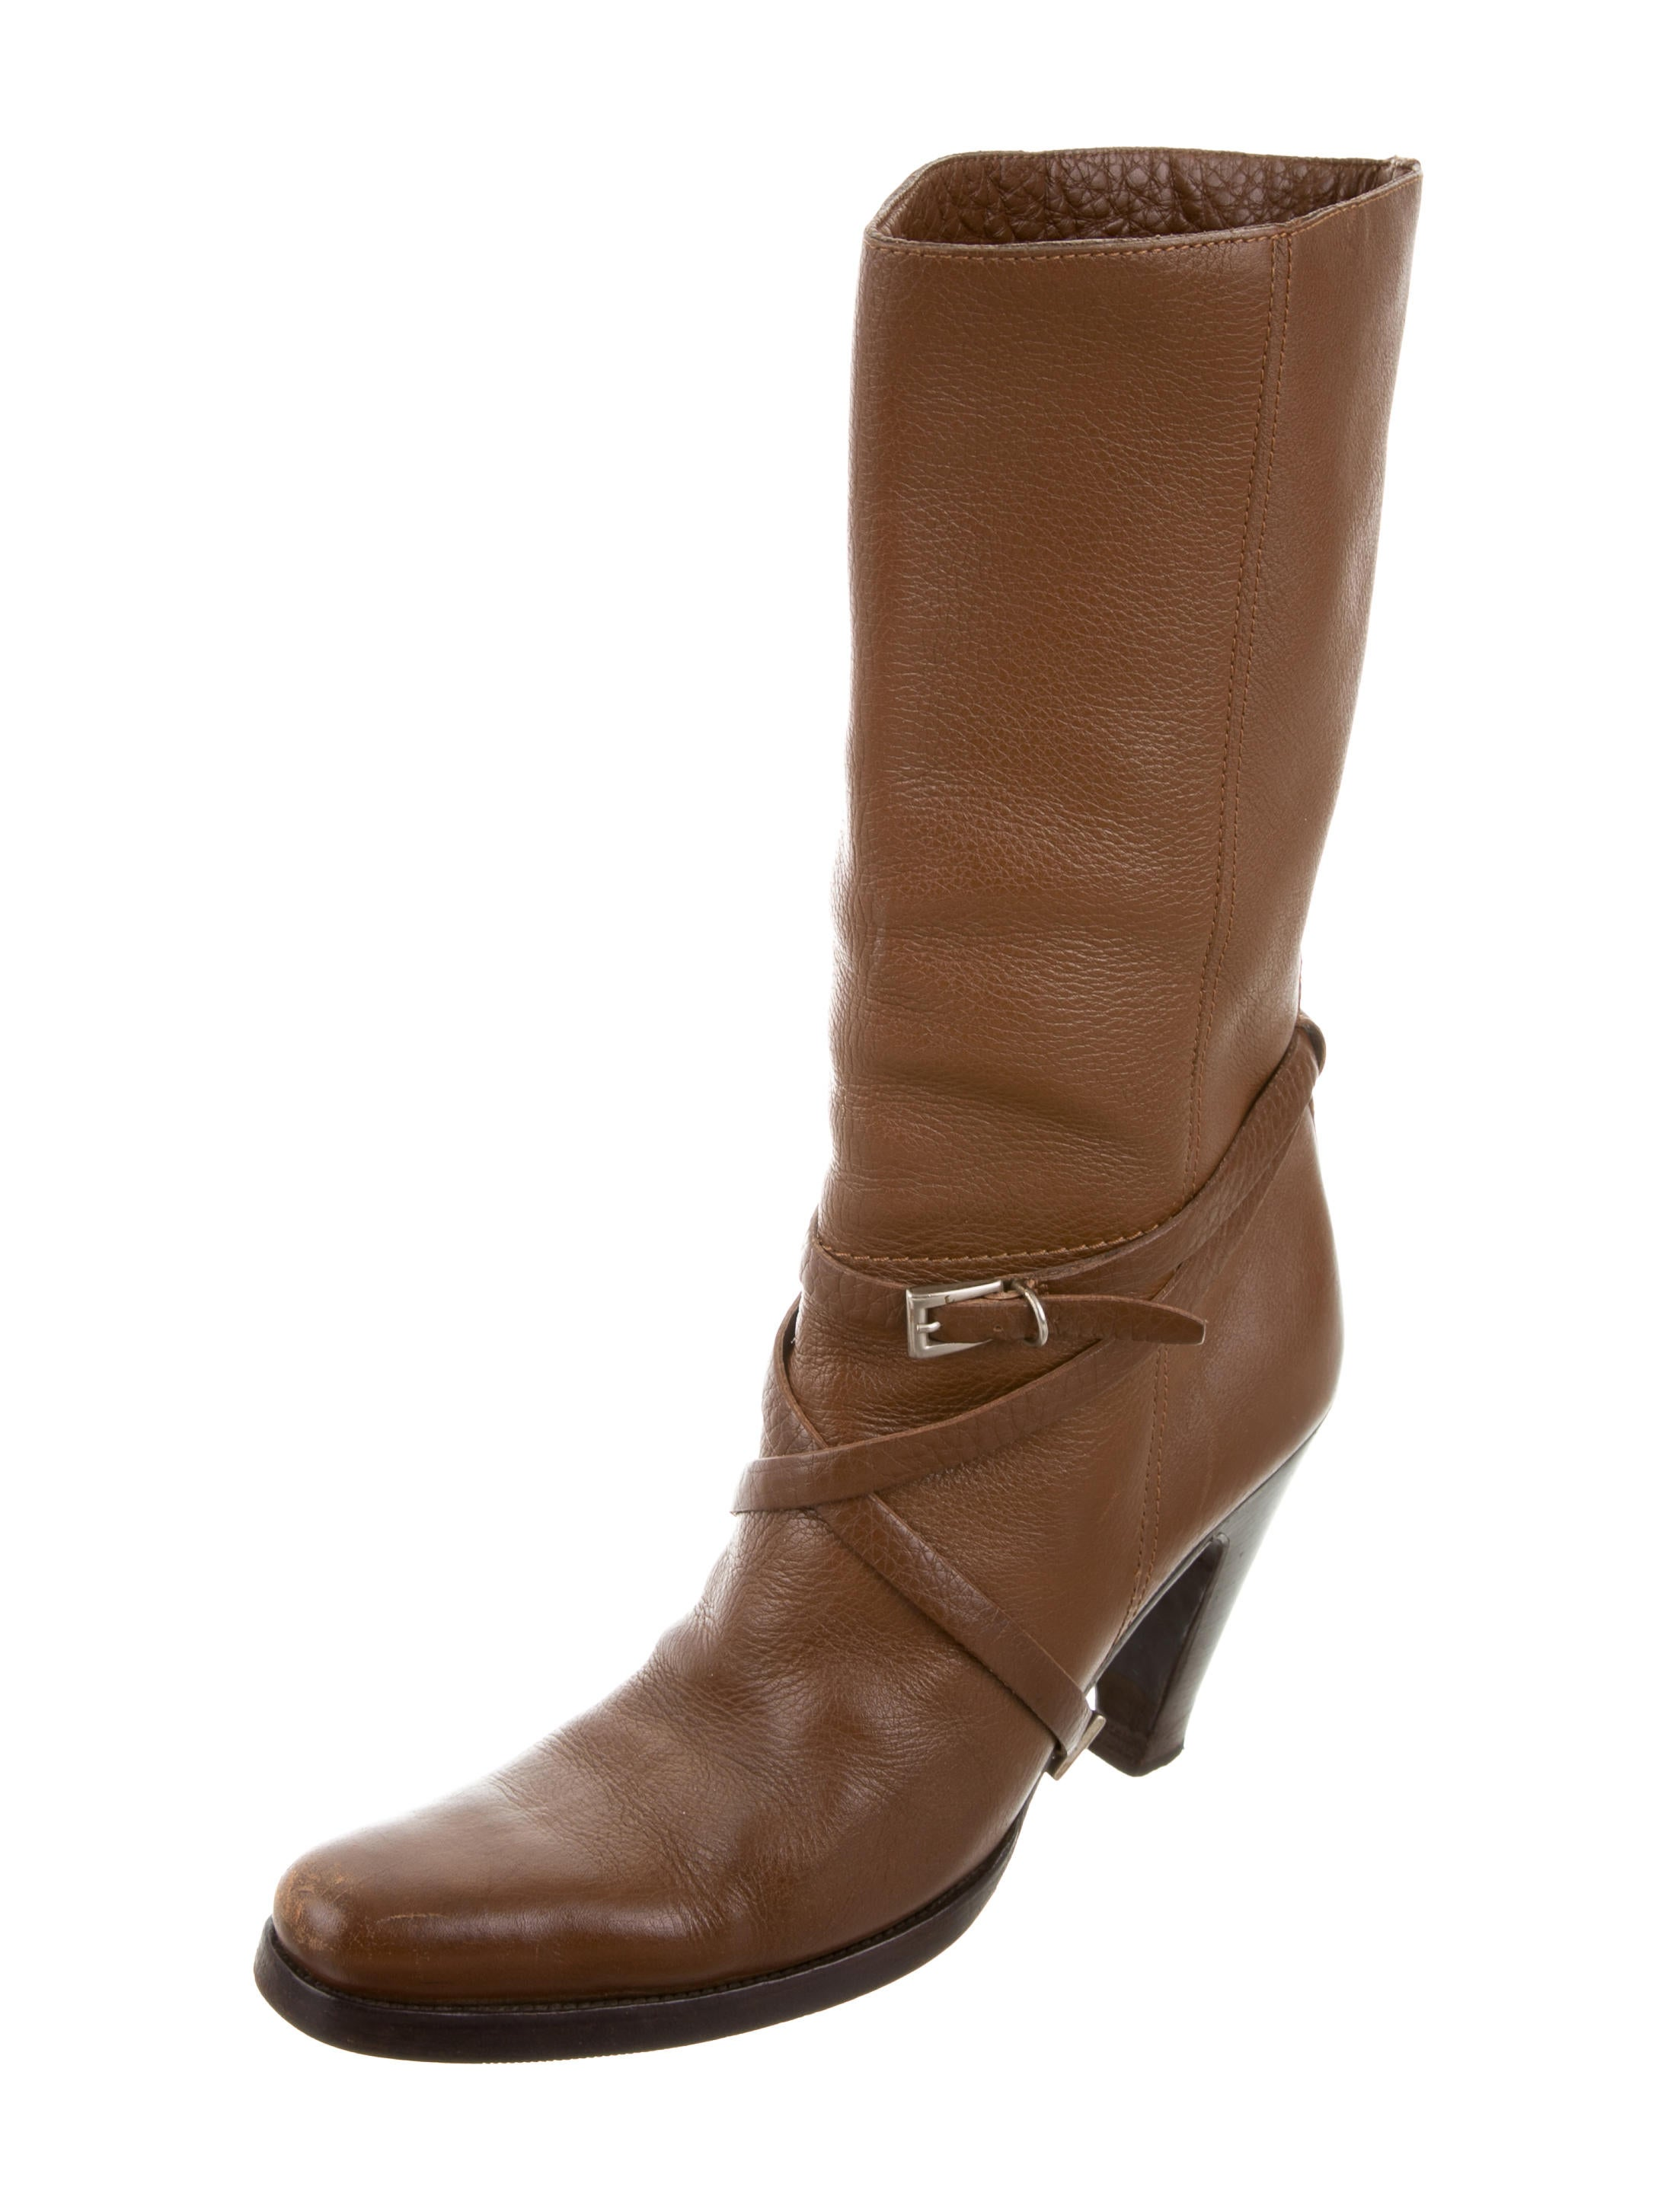 prada leather mid calf boots shoes pra157312 the